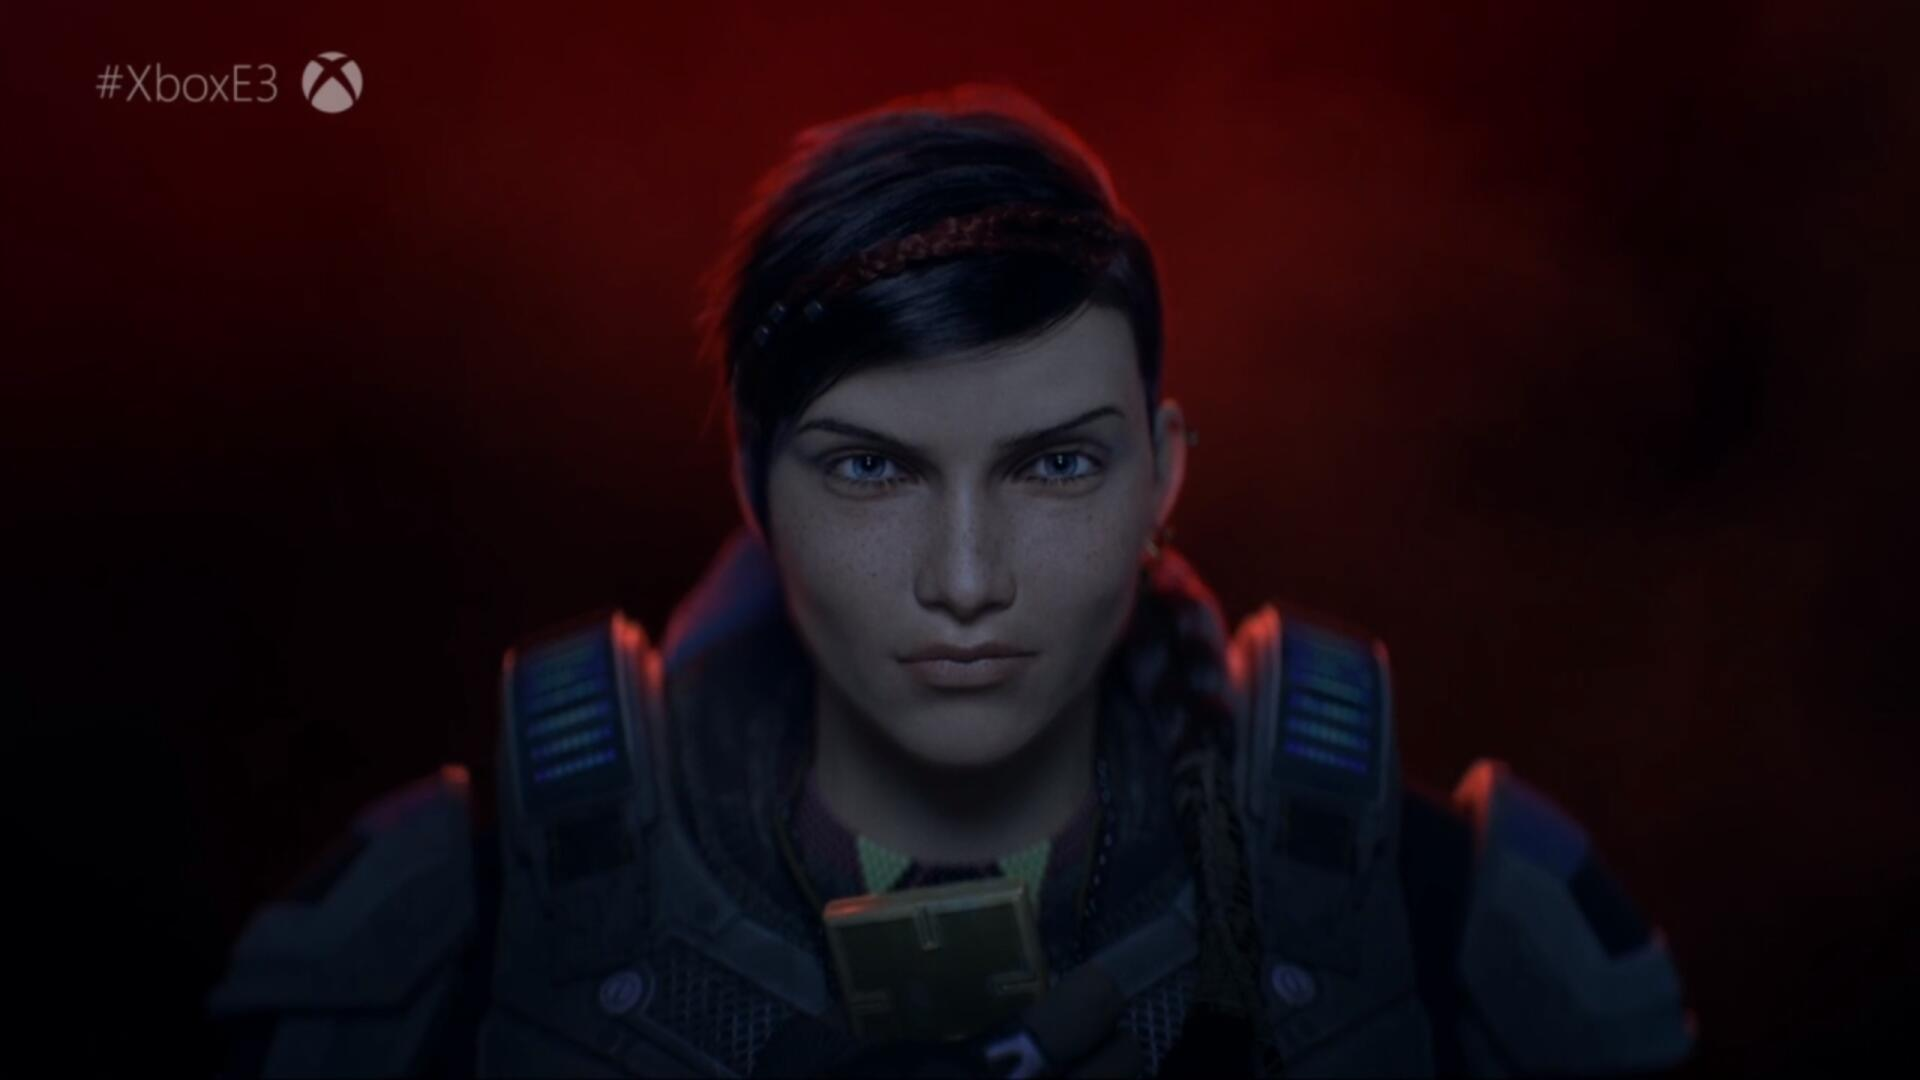 Gears 5 Releases This September, but You'll Be Able to Play It Early